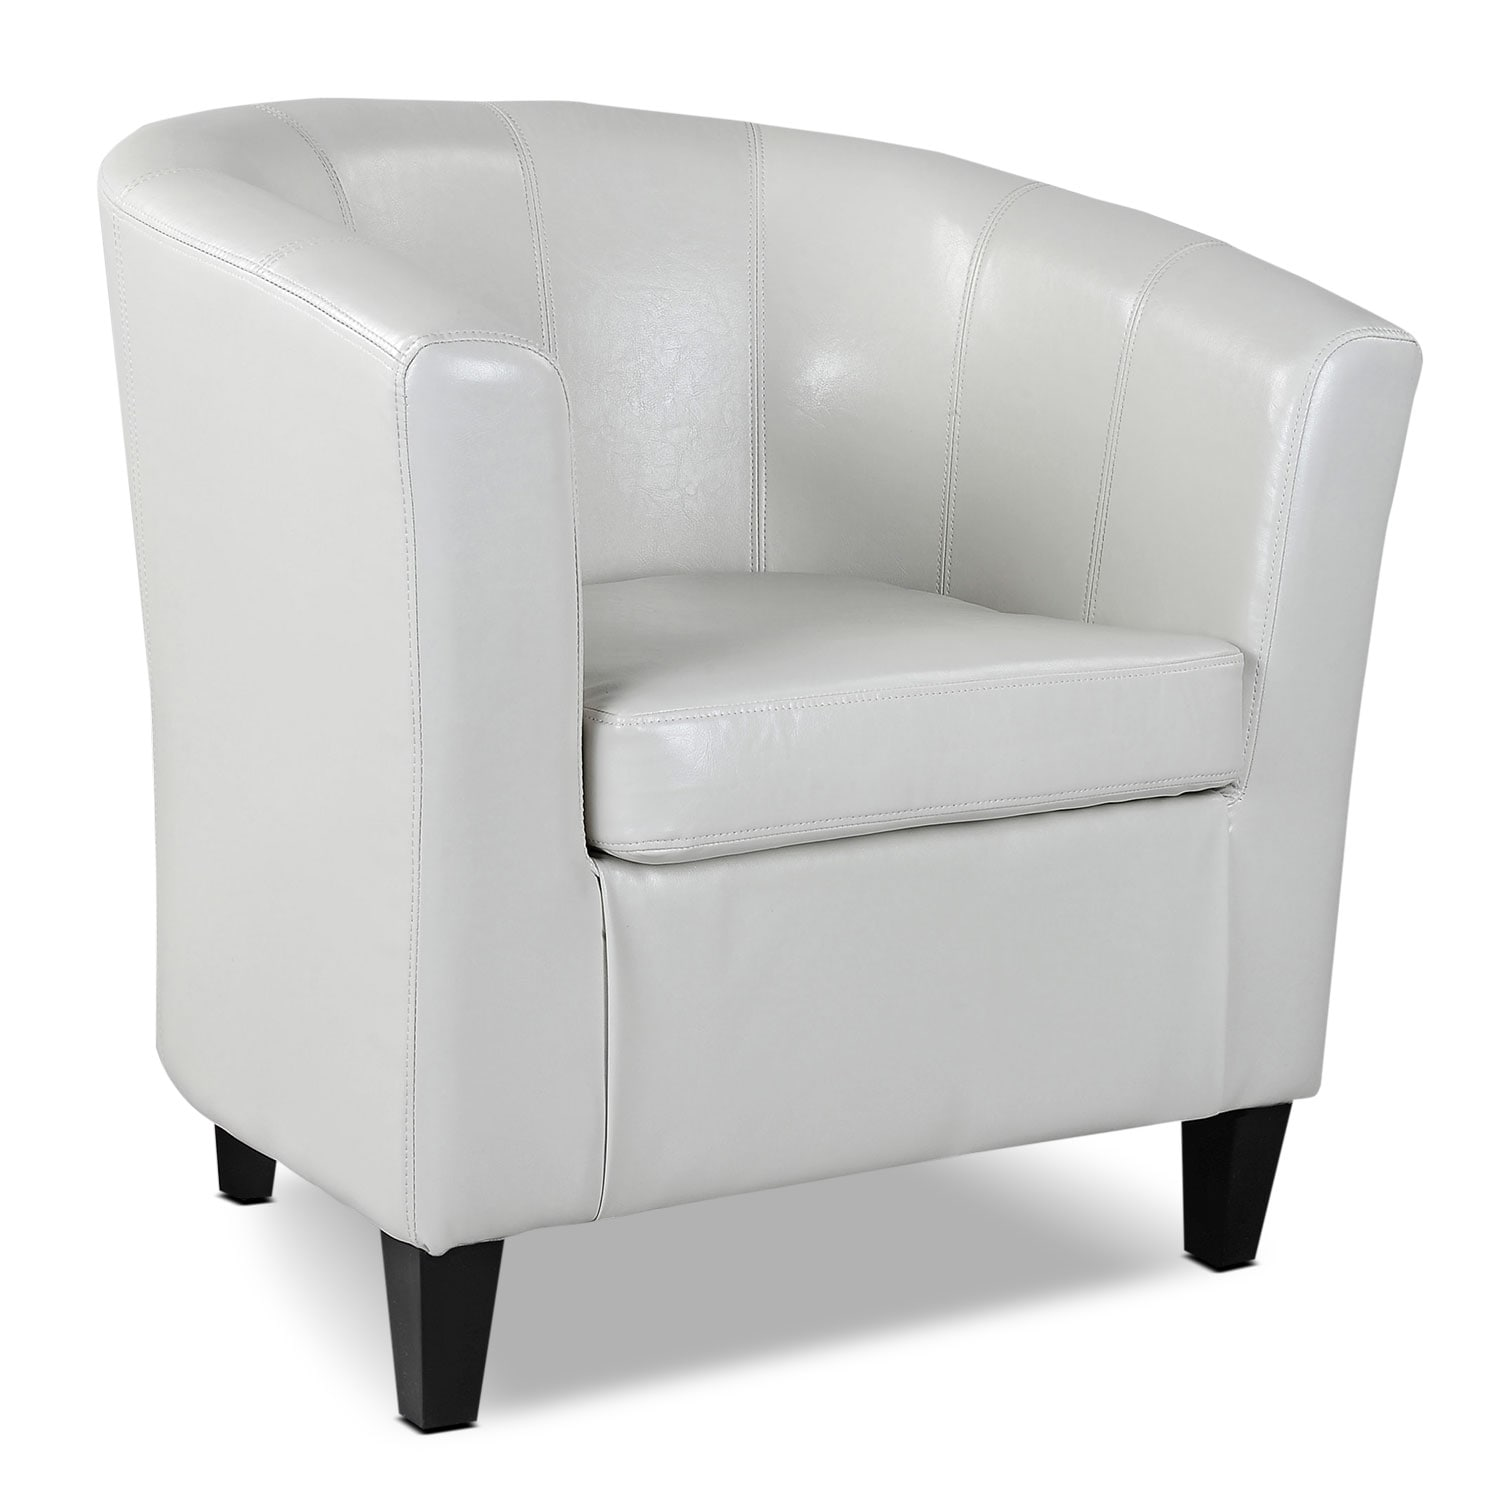 Living Room Furniture - LAD Bonded Leather Accent Chair – Cream